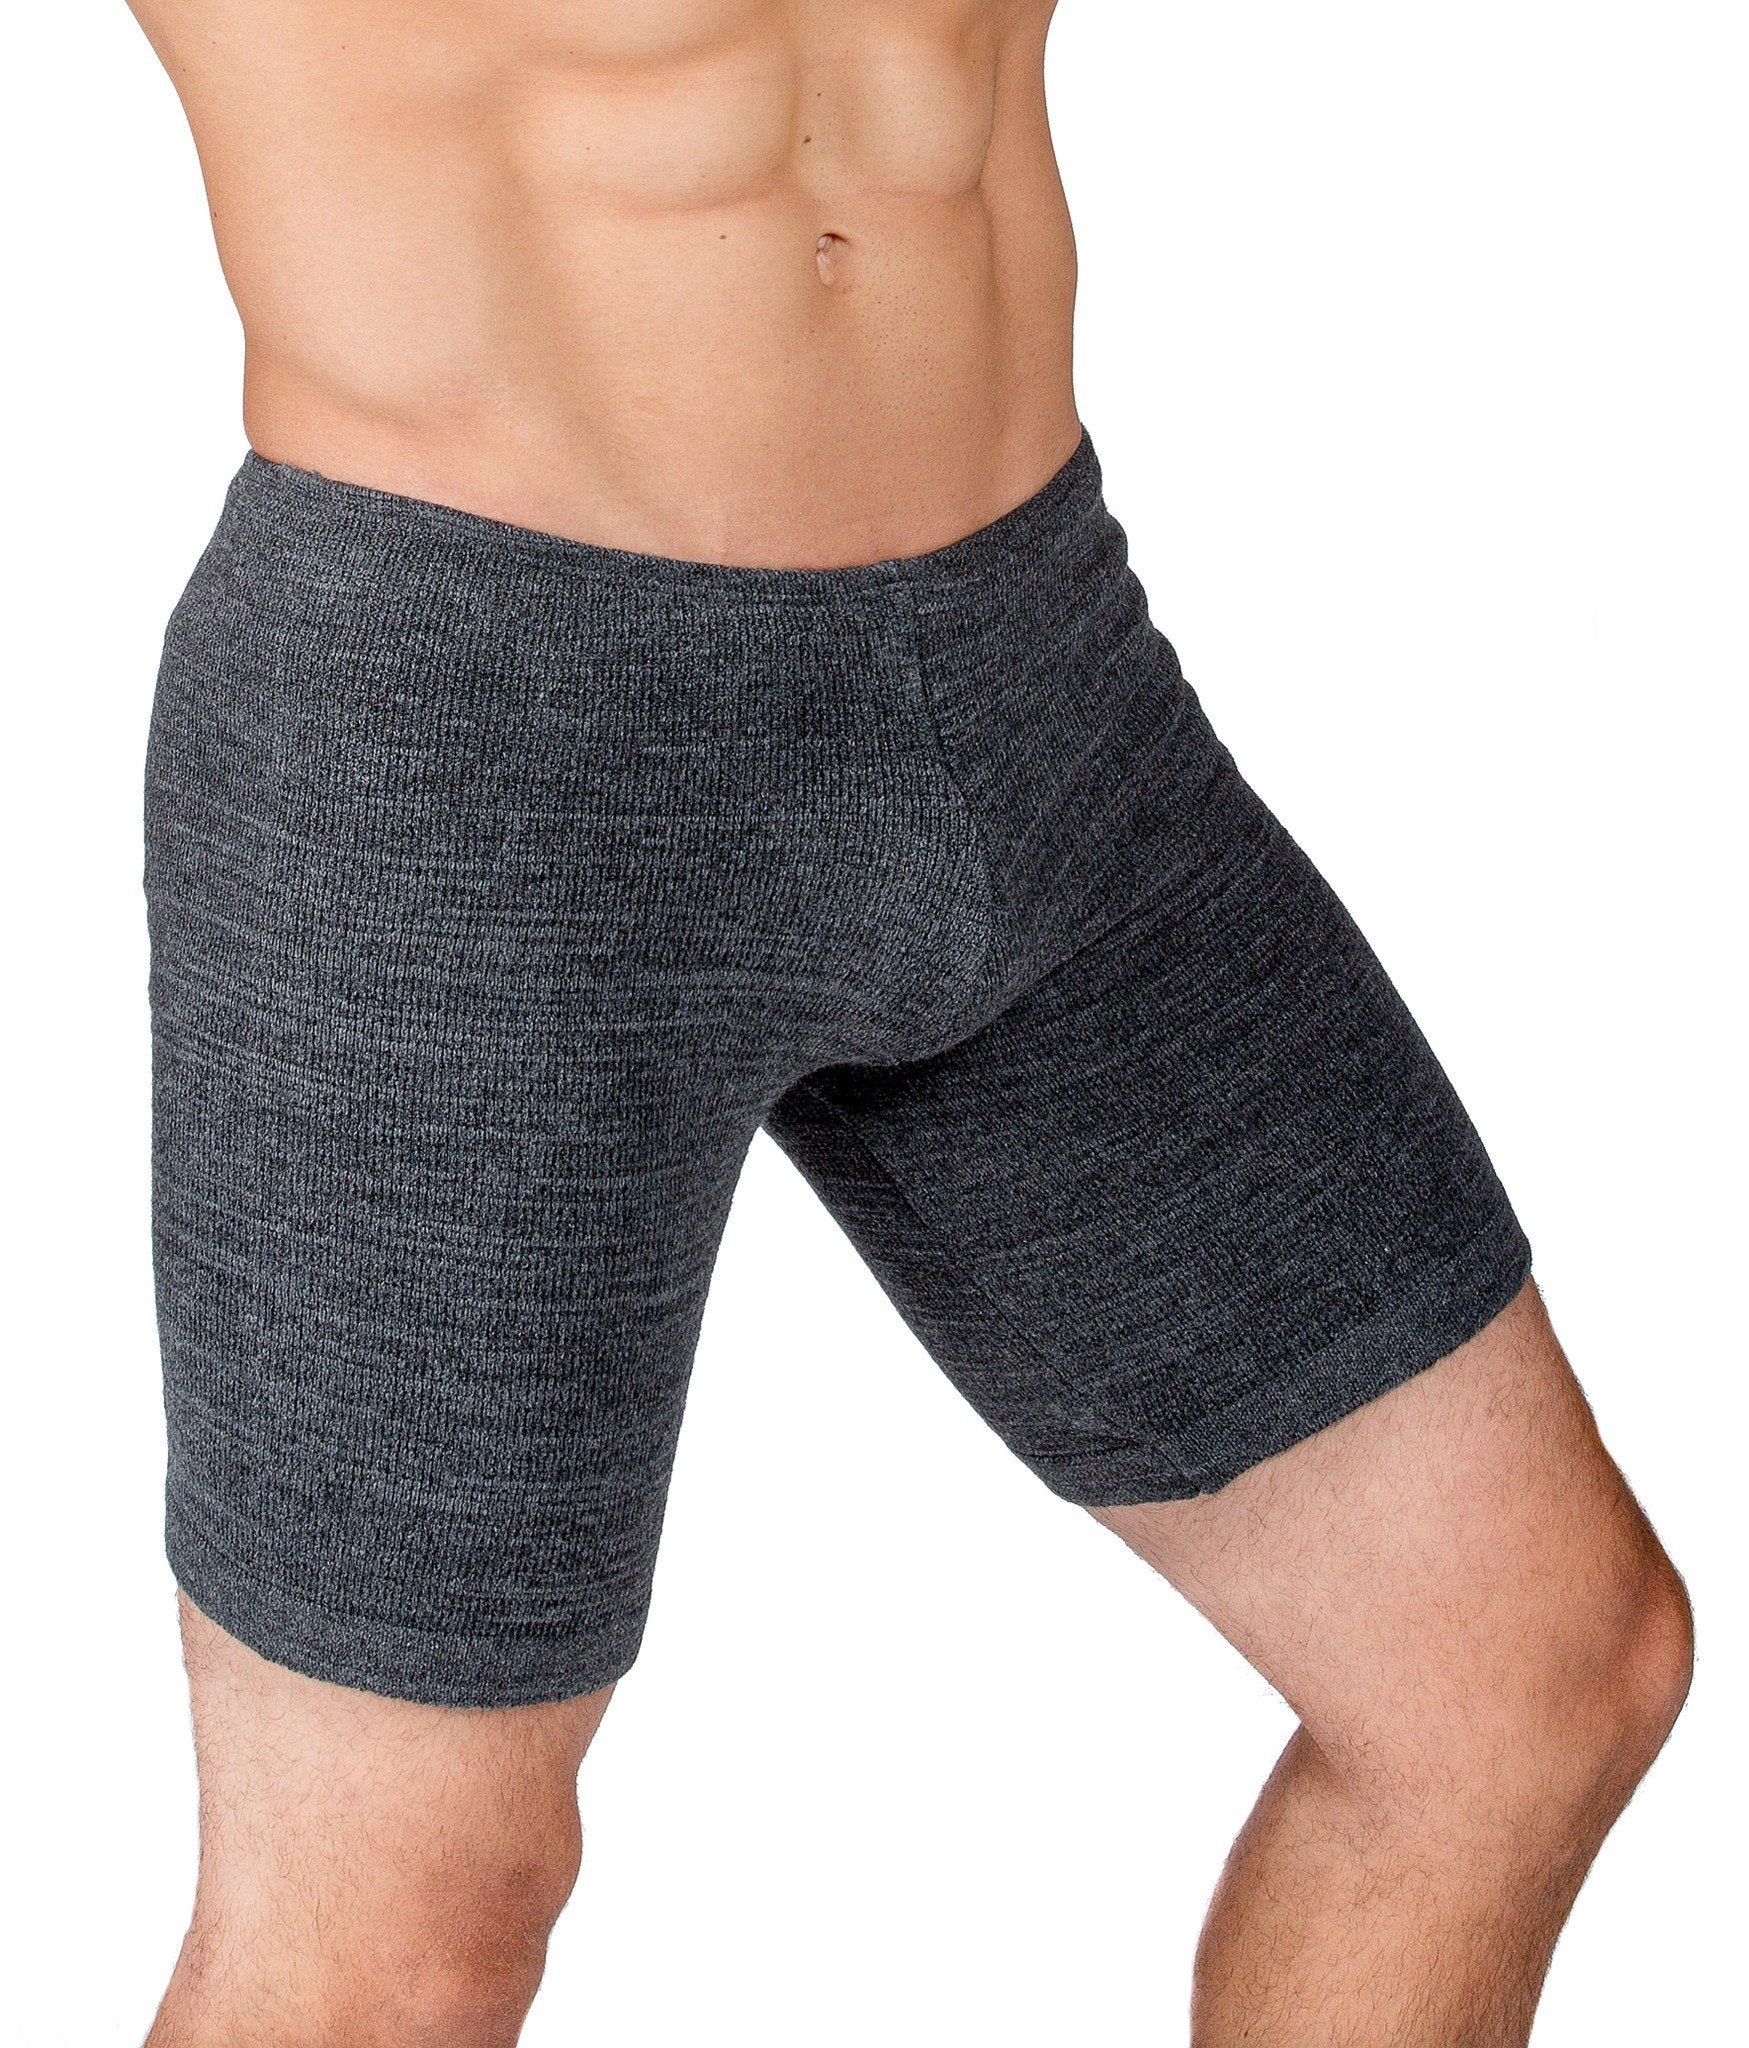 Men's Dance Shorts / Men's Dancewear @KDdanceNewYork #MadeInUSA - 7